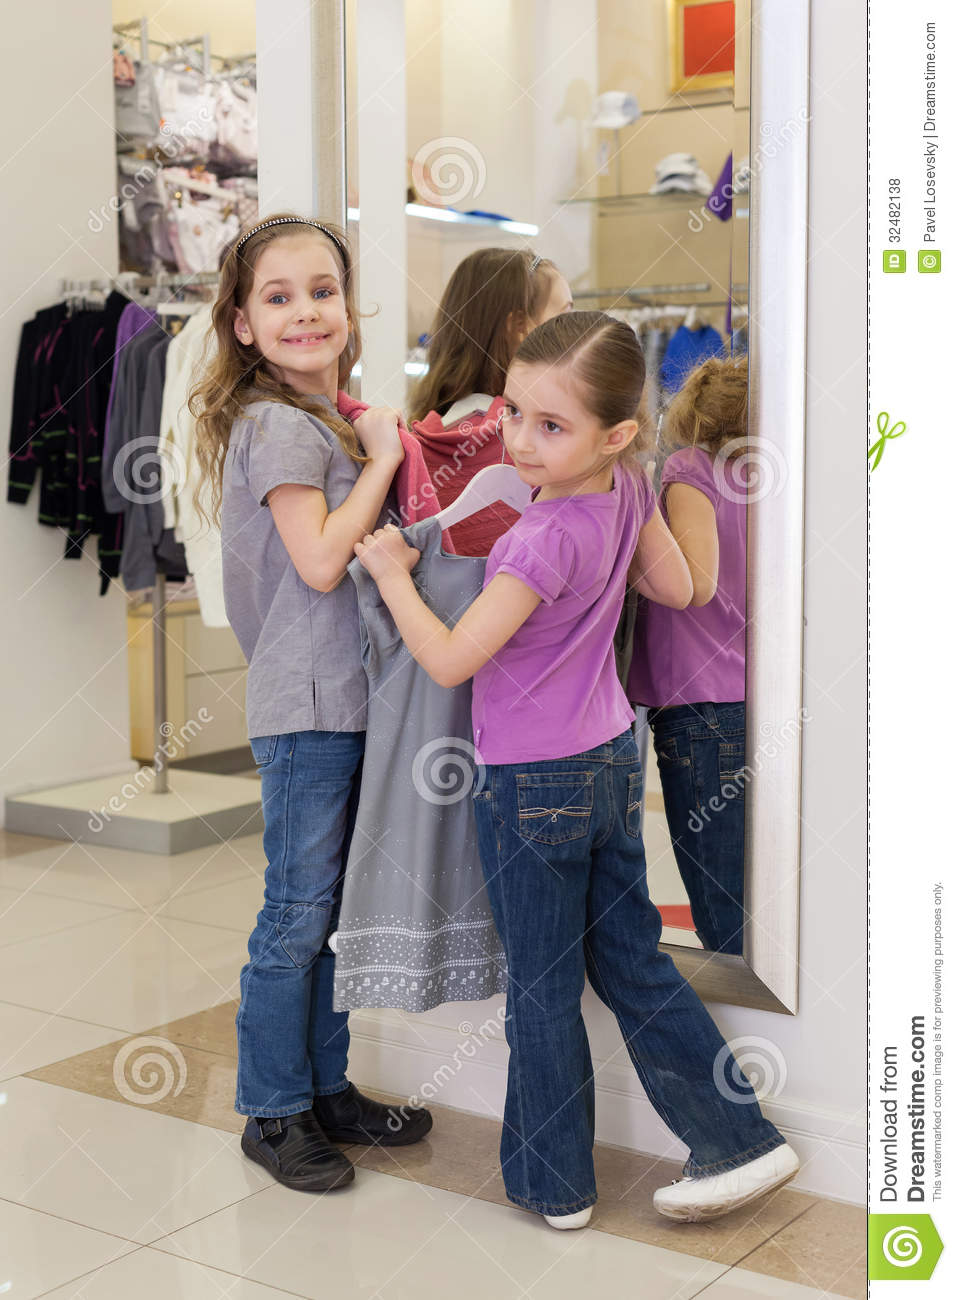 little girls near a mirror try on clothes in a store childrens clothes